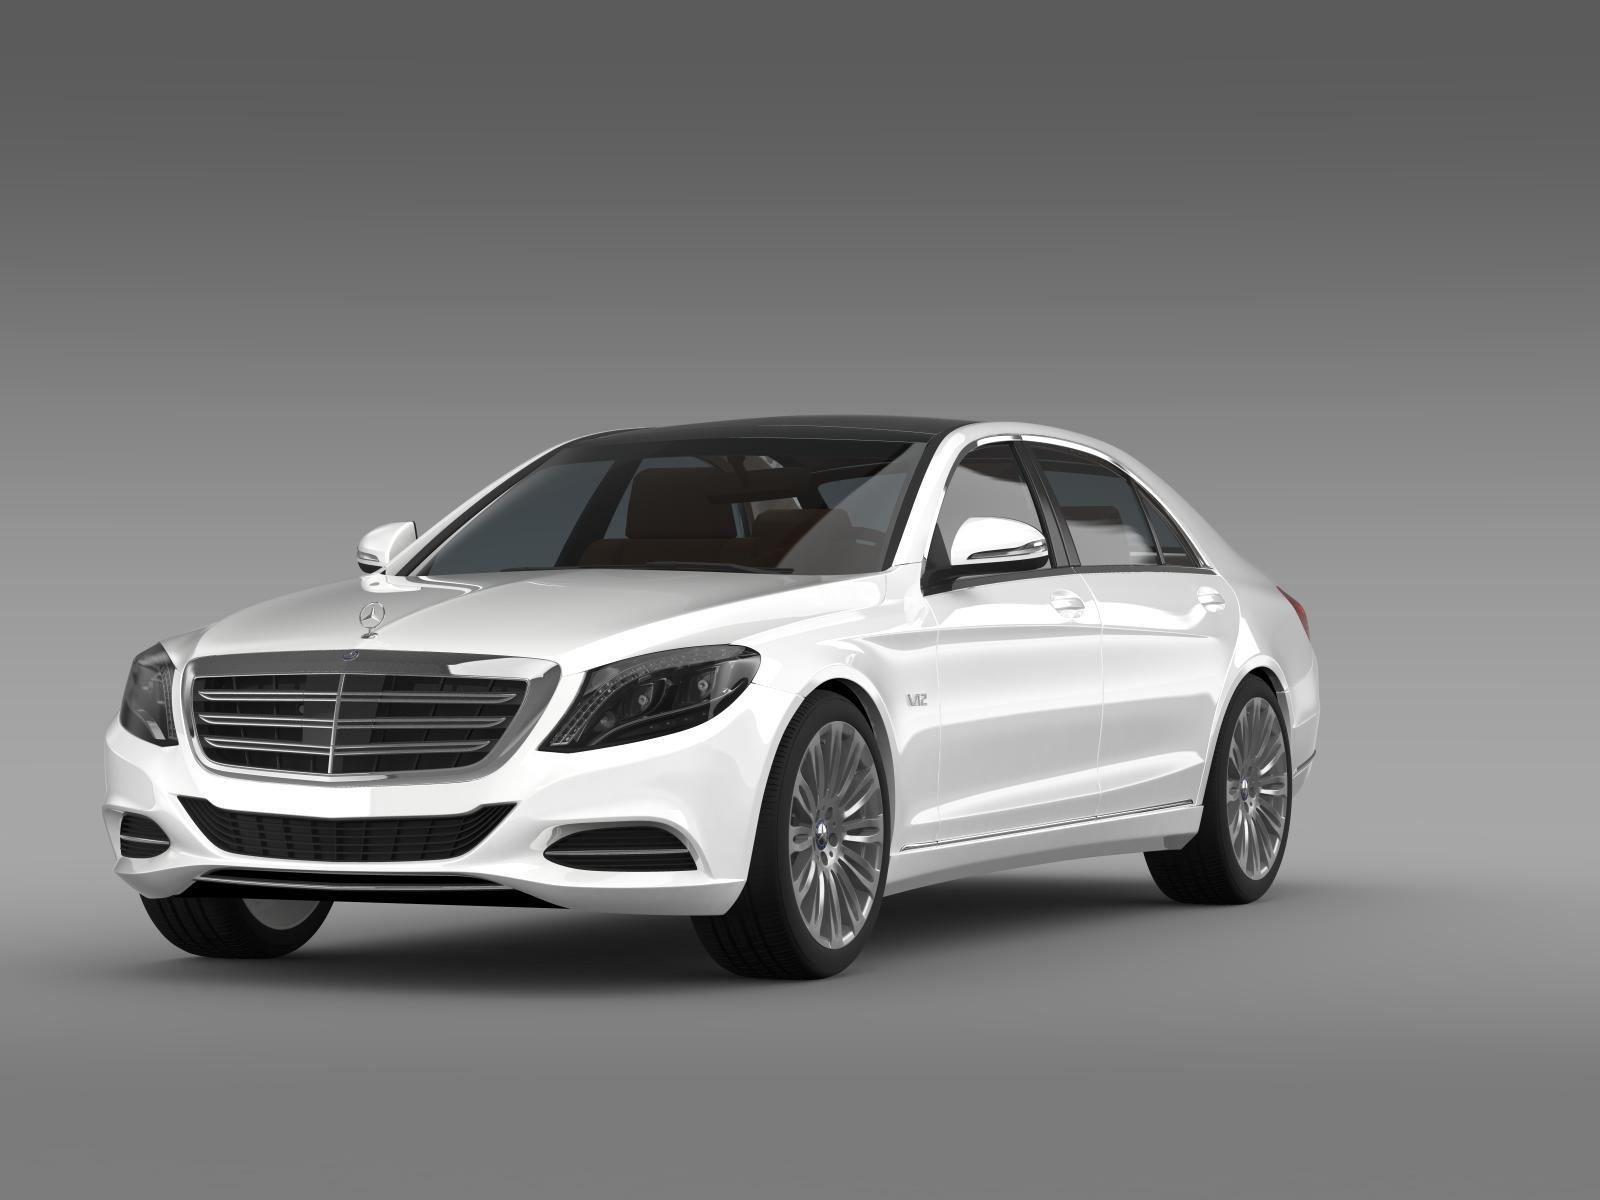 Mercedes benz s 600 v12 w222 2014 by creator 3d 3docean for Mercedes benz creator